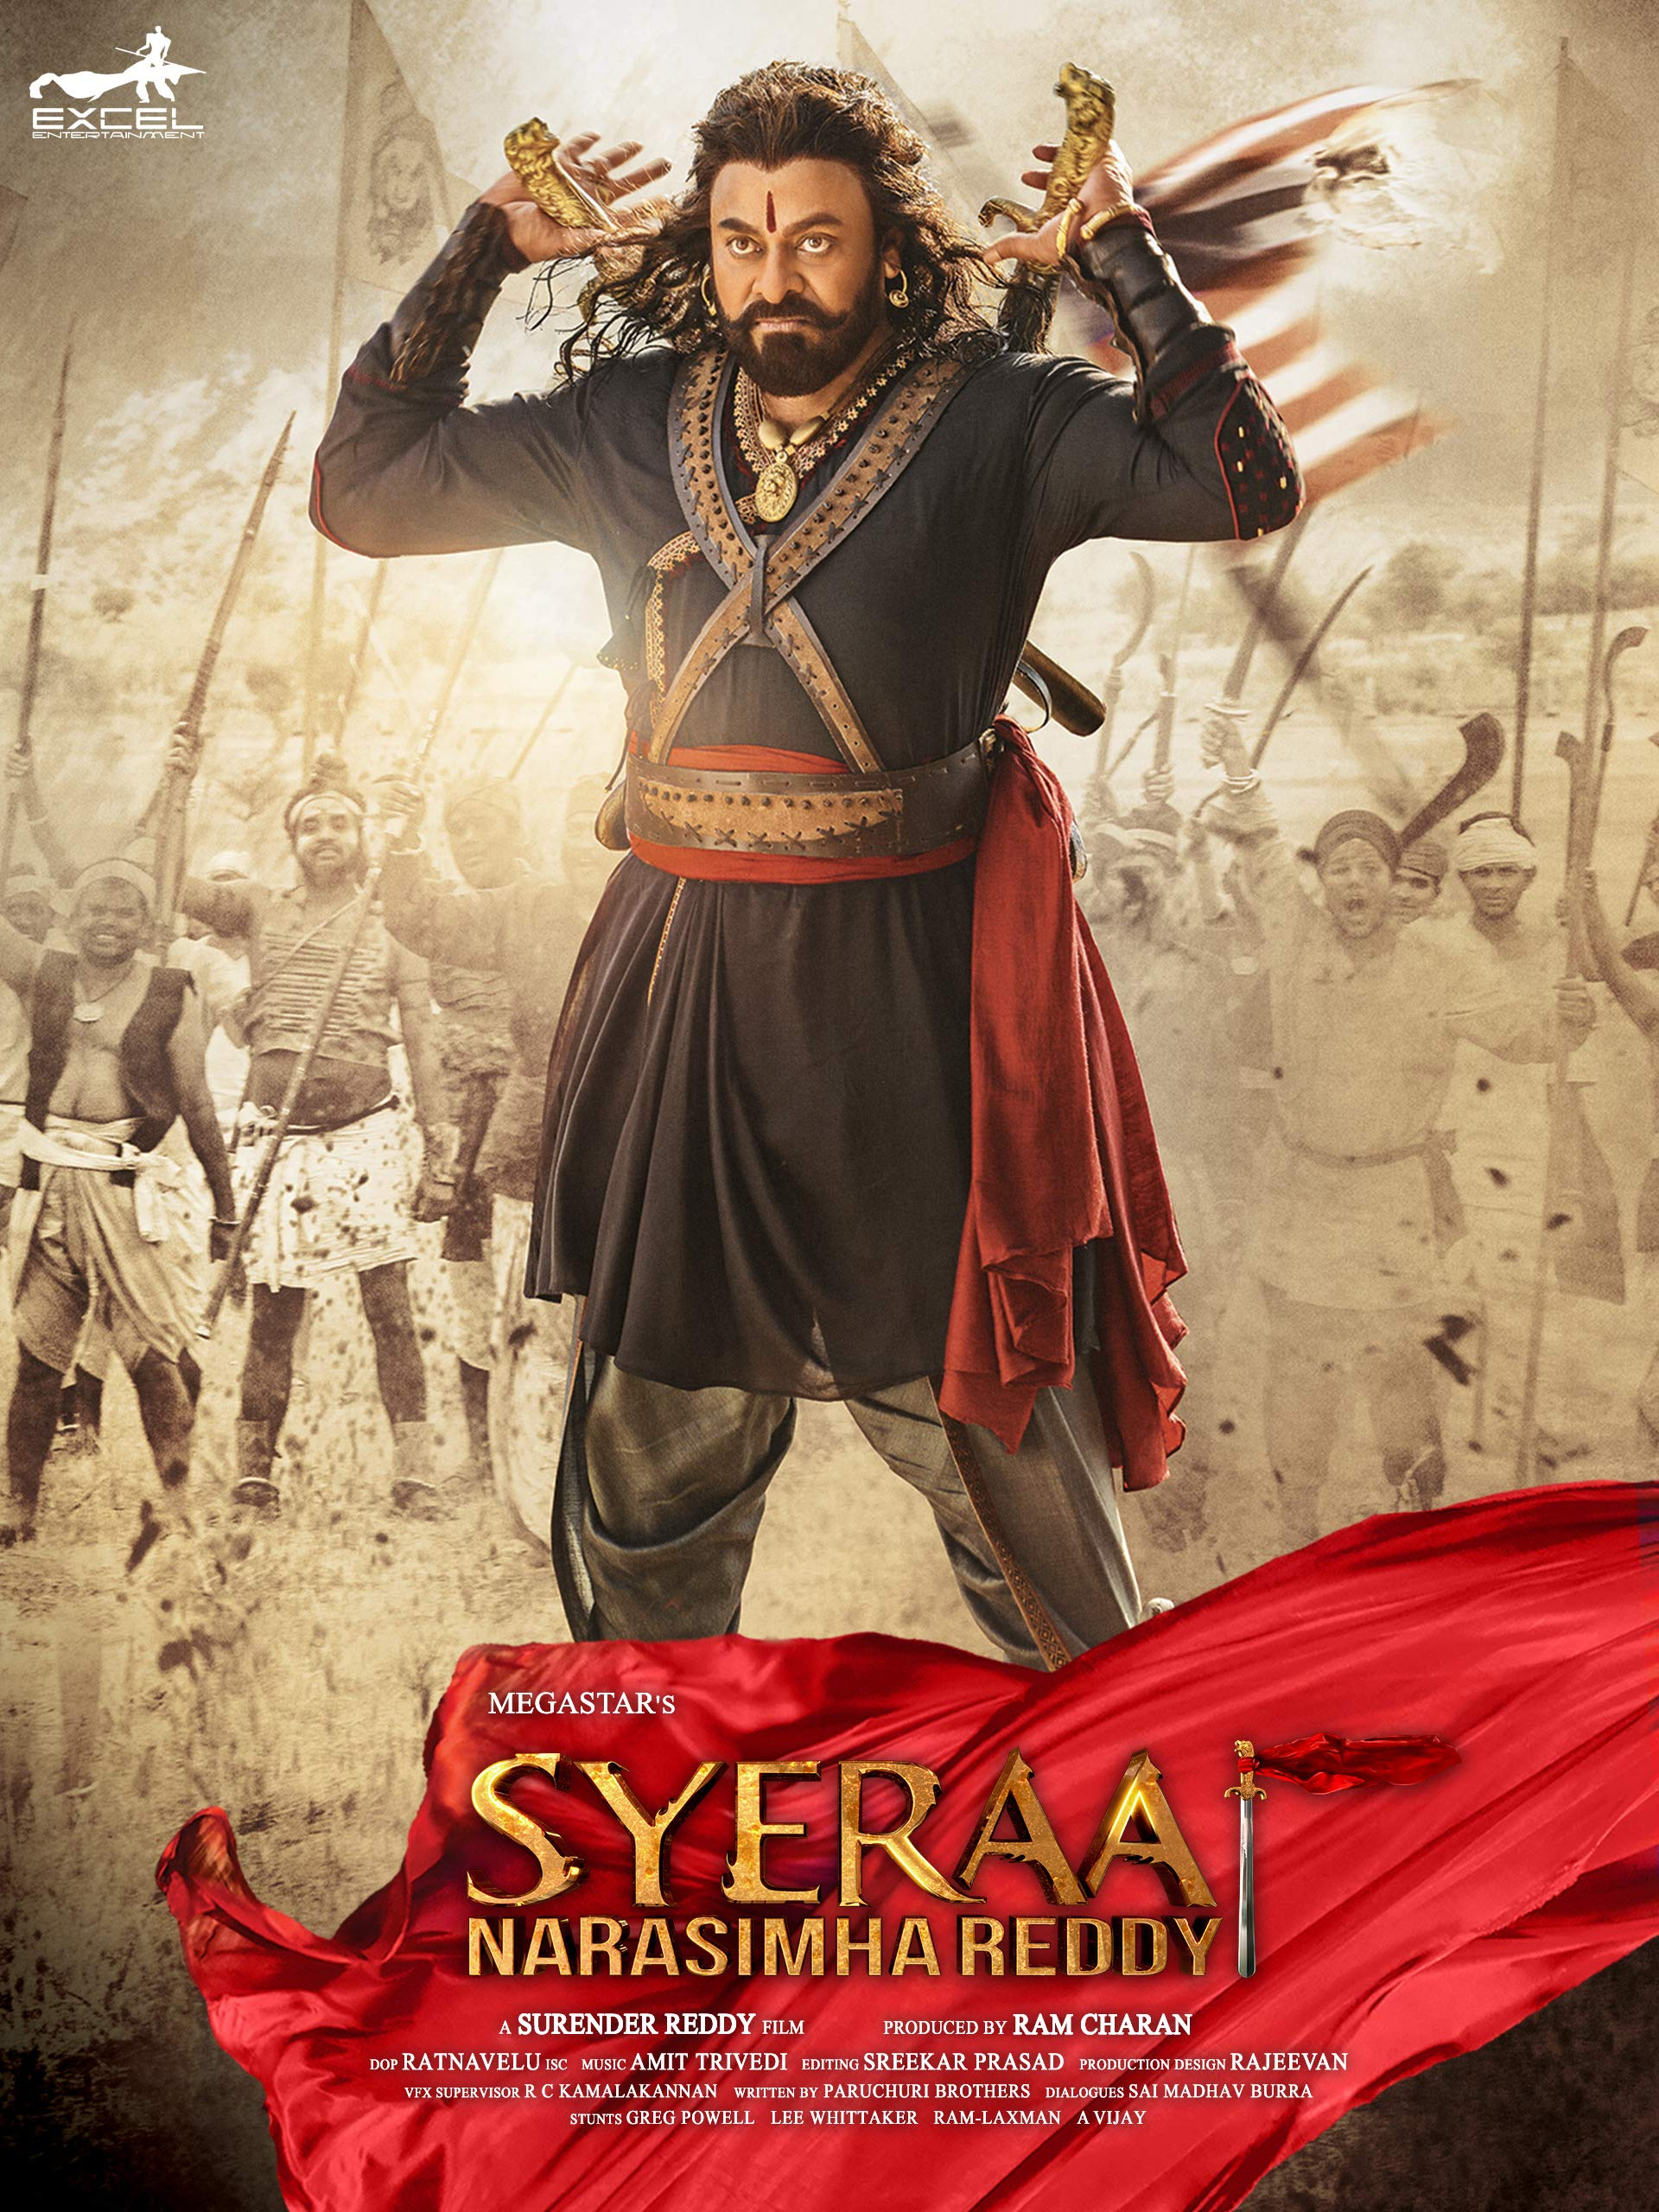 Sye Raa Narasimha Reddy (2020) Hindi WEB-DL 720p x264 1GB Download